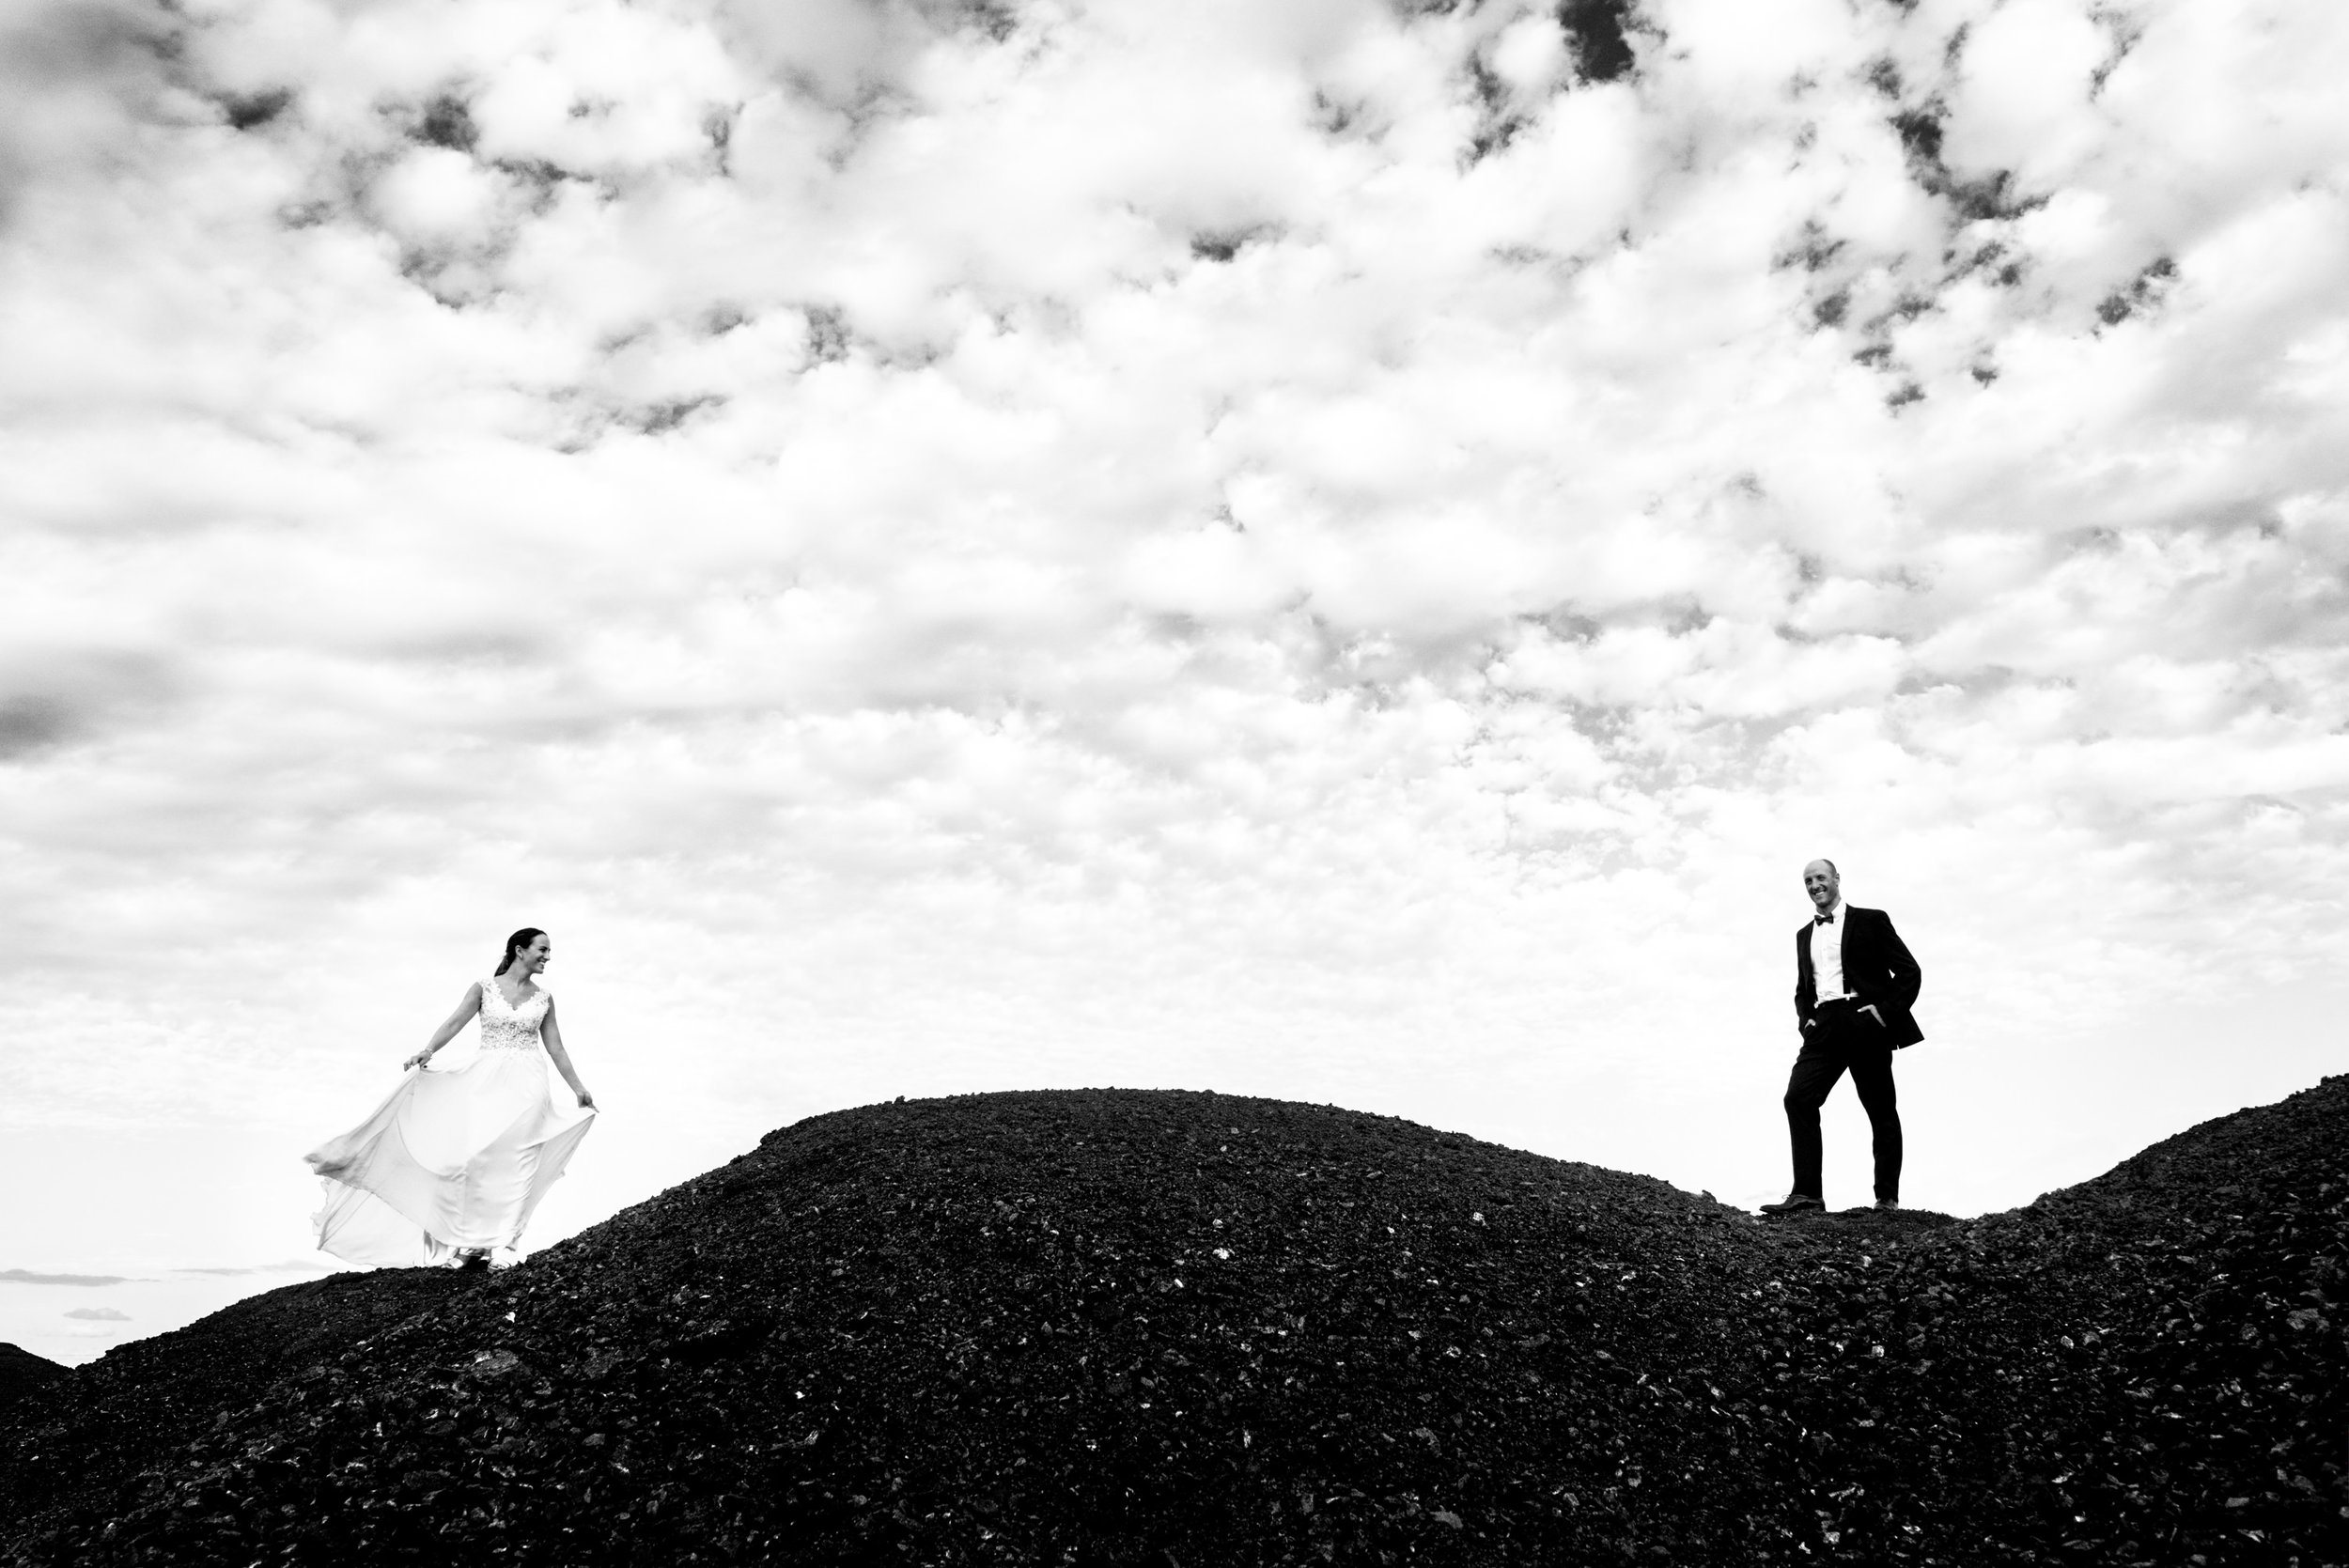 fotografo-de-boda-rosario-trash-the-dress-arroyo-seco-argentina-2.jpg